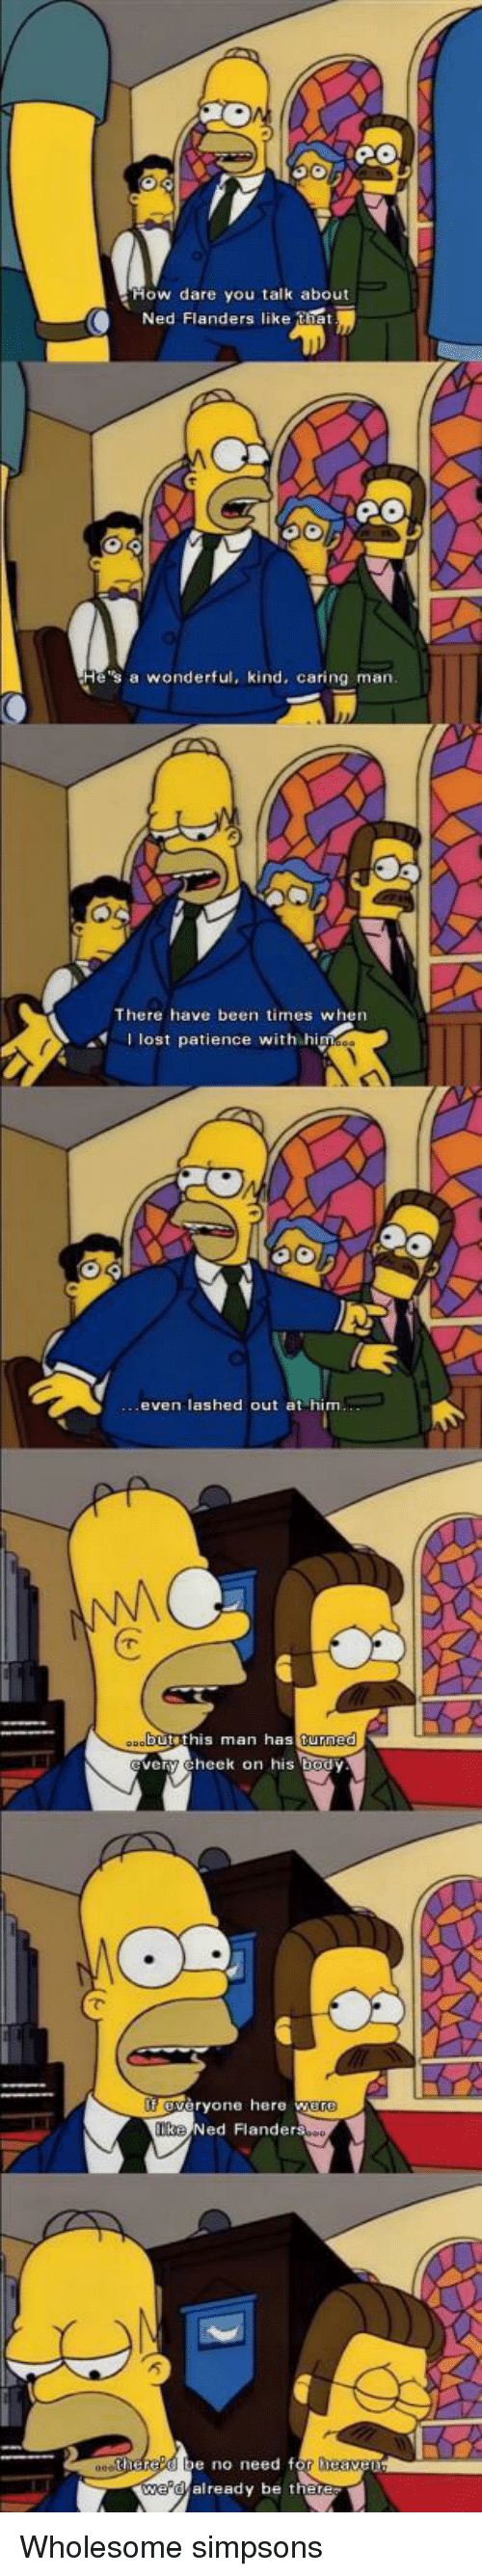 Ned Flanders: ow dare you talk about  Ned Flanders like tiet  e's a wonderful, kind, caring marn  There have been times when  I lost patience with hi  even lashed out at him  butethis man as  turned  ery cheek on his body  eryone here w  Ned Flanders  e no need f  already be the <p>Wholesome simpsons</p>